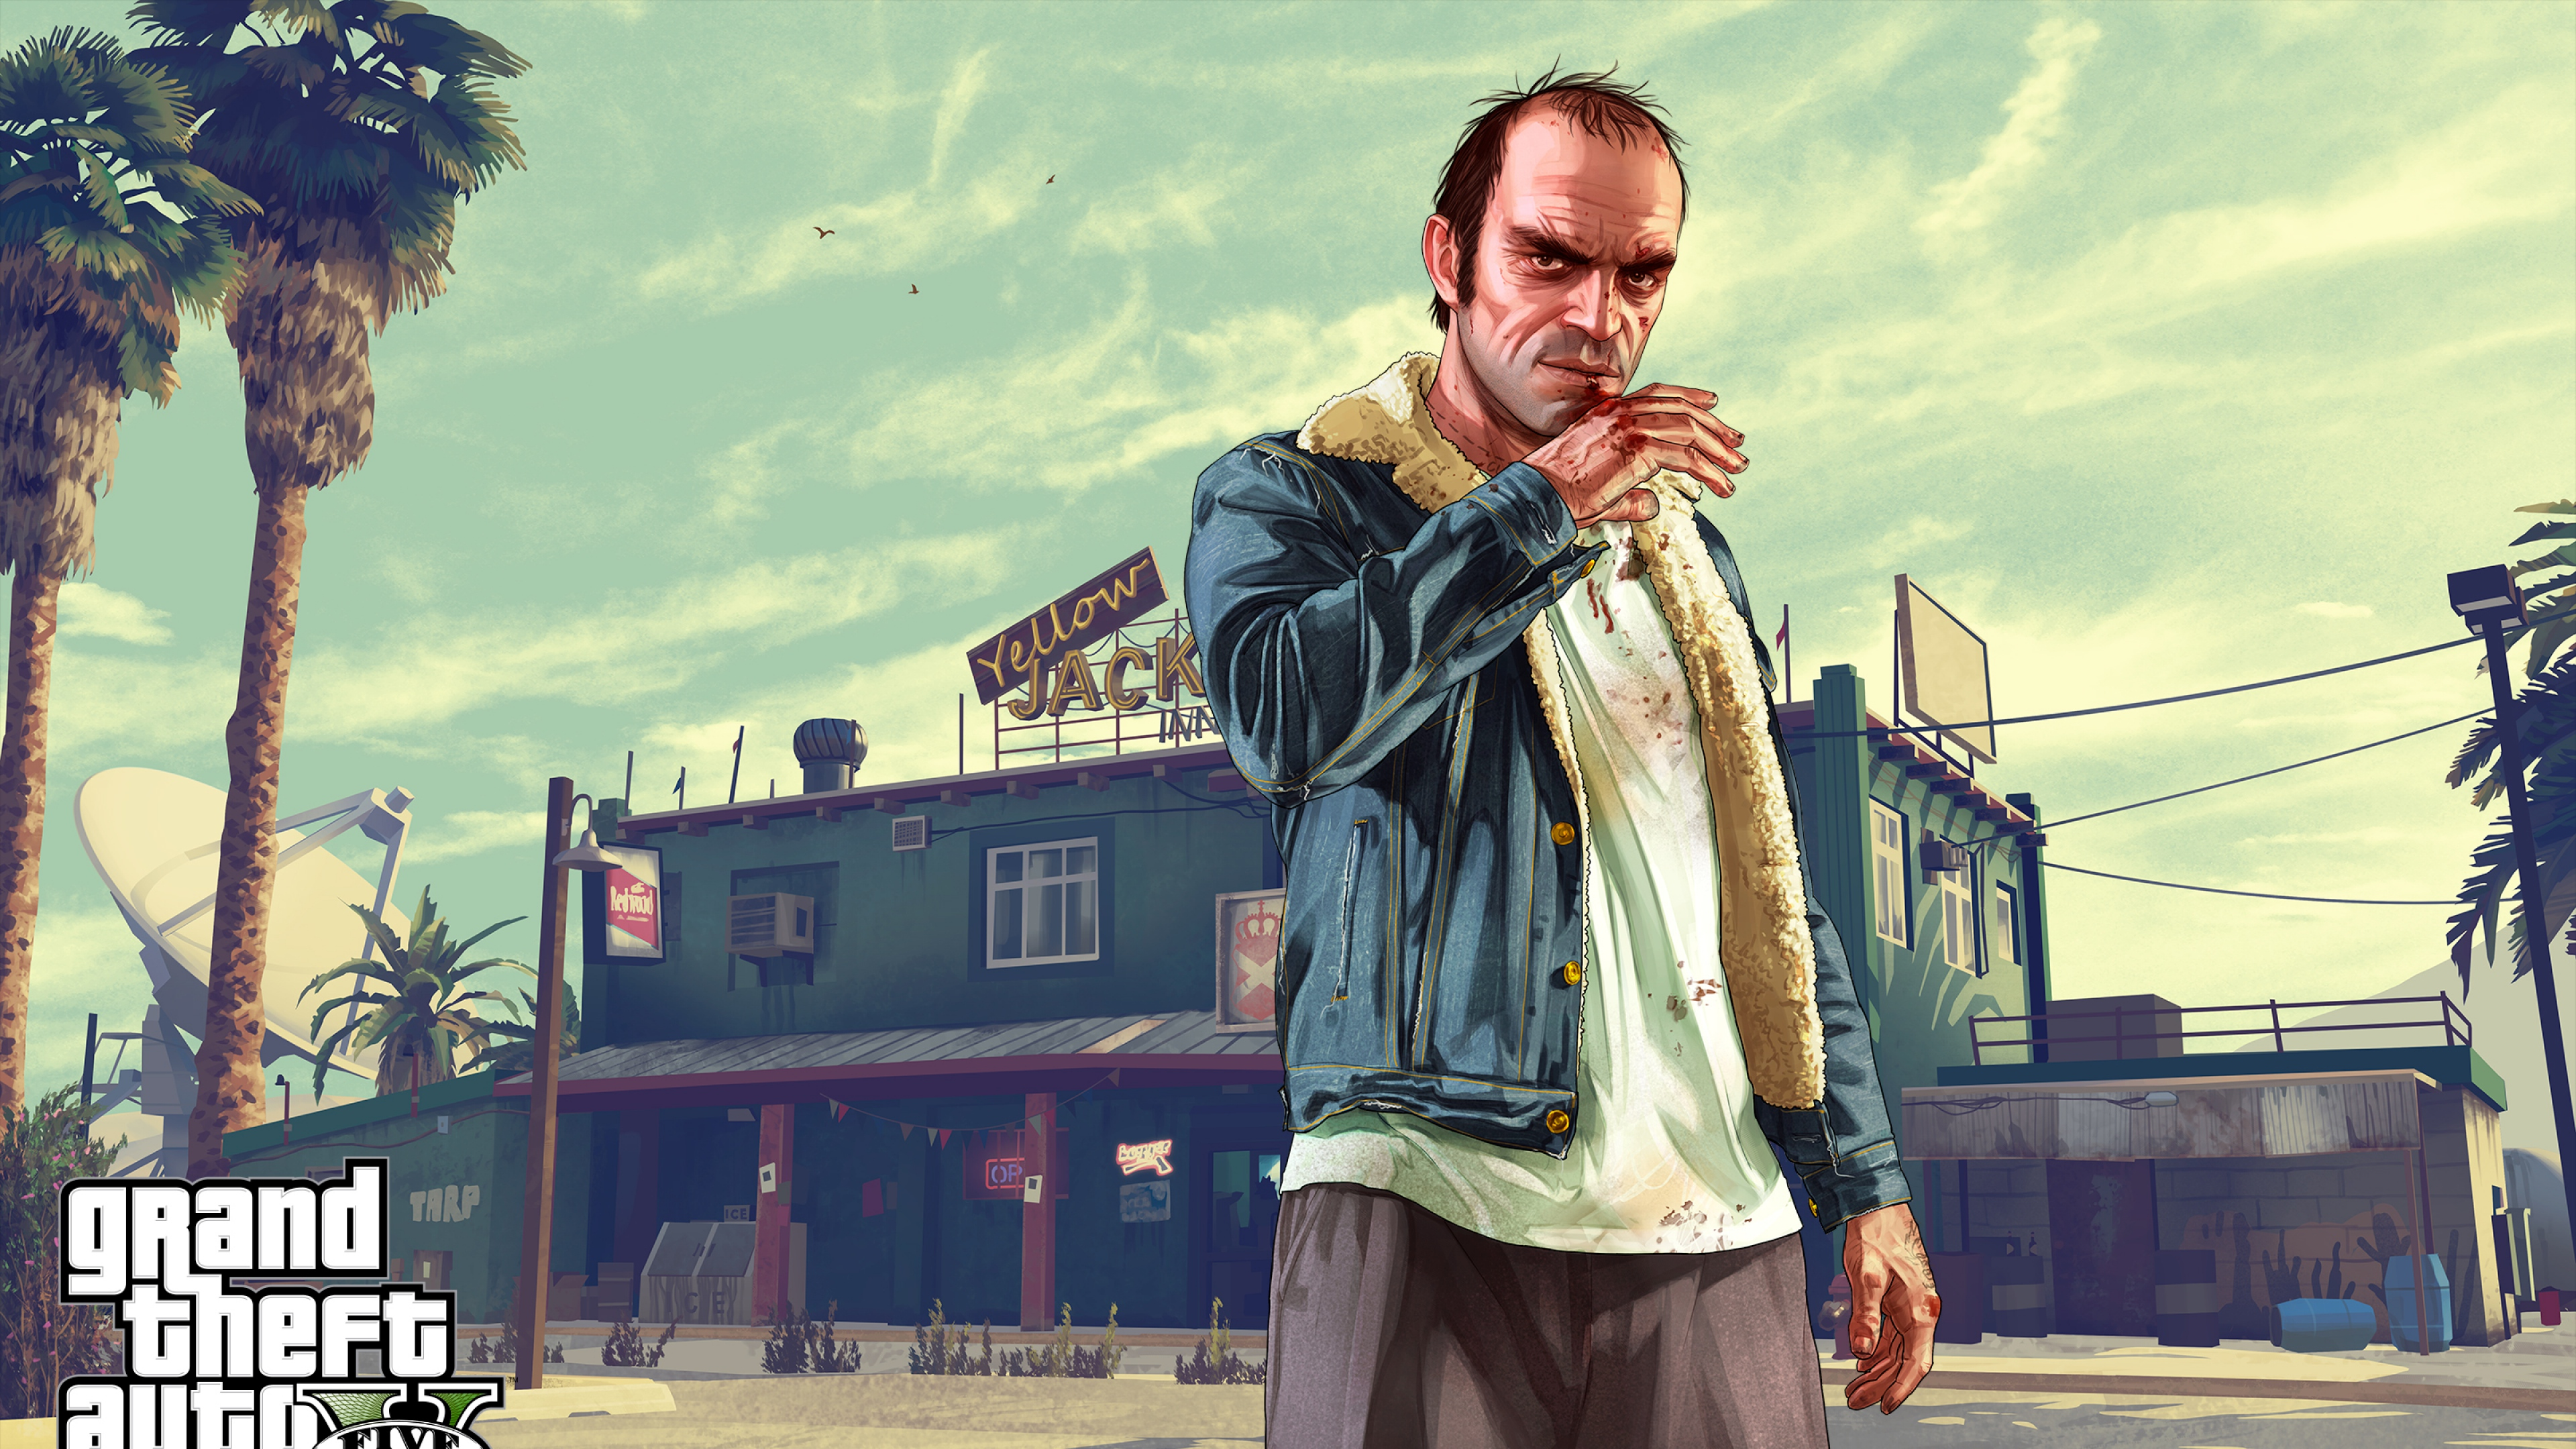 grand theft auto trevor, hd games, 4k wallpapers, images